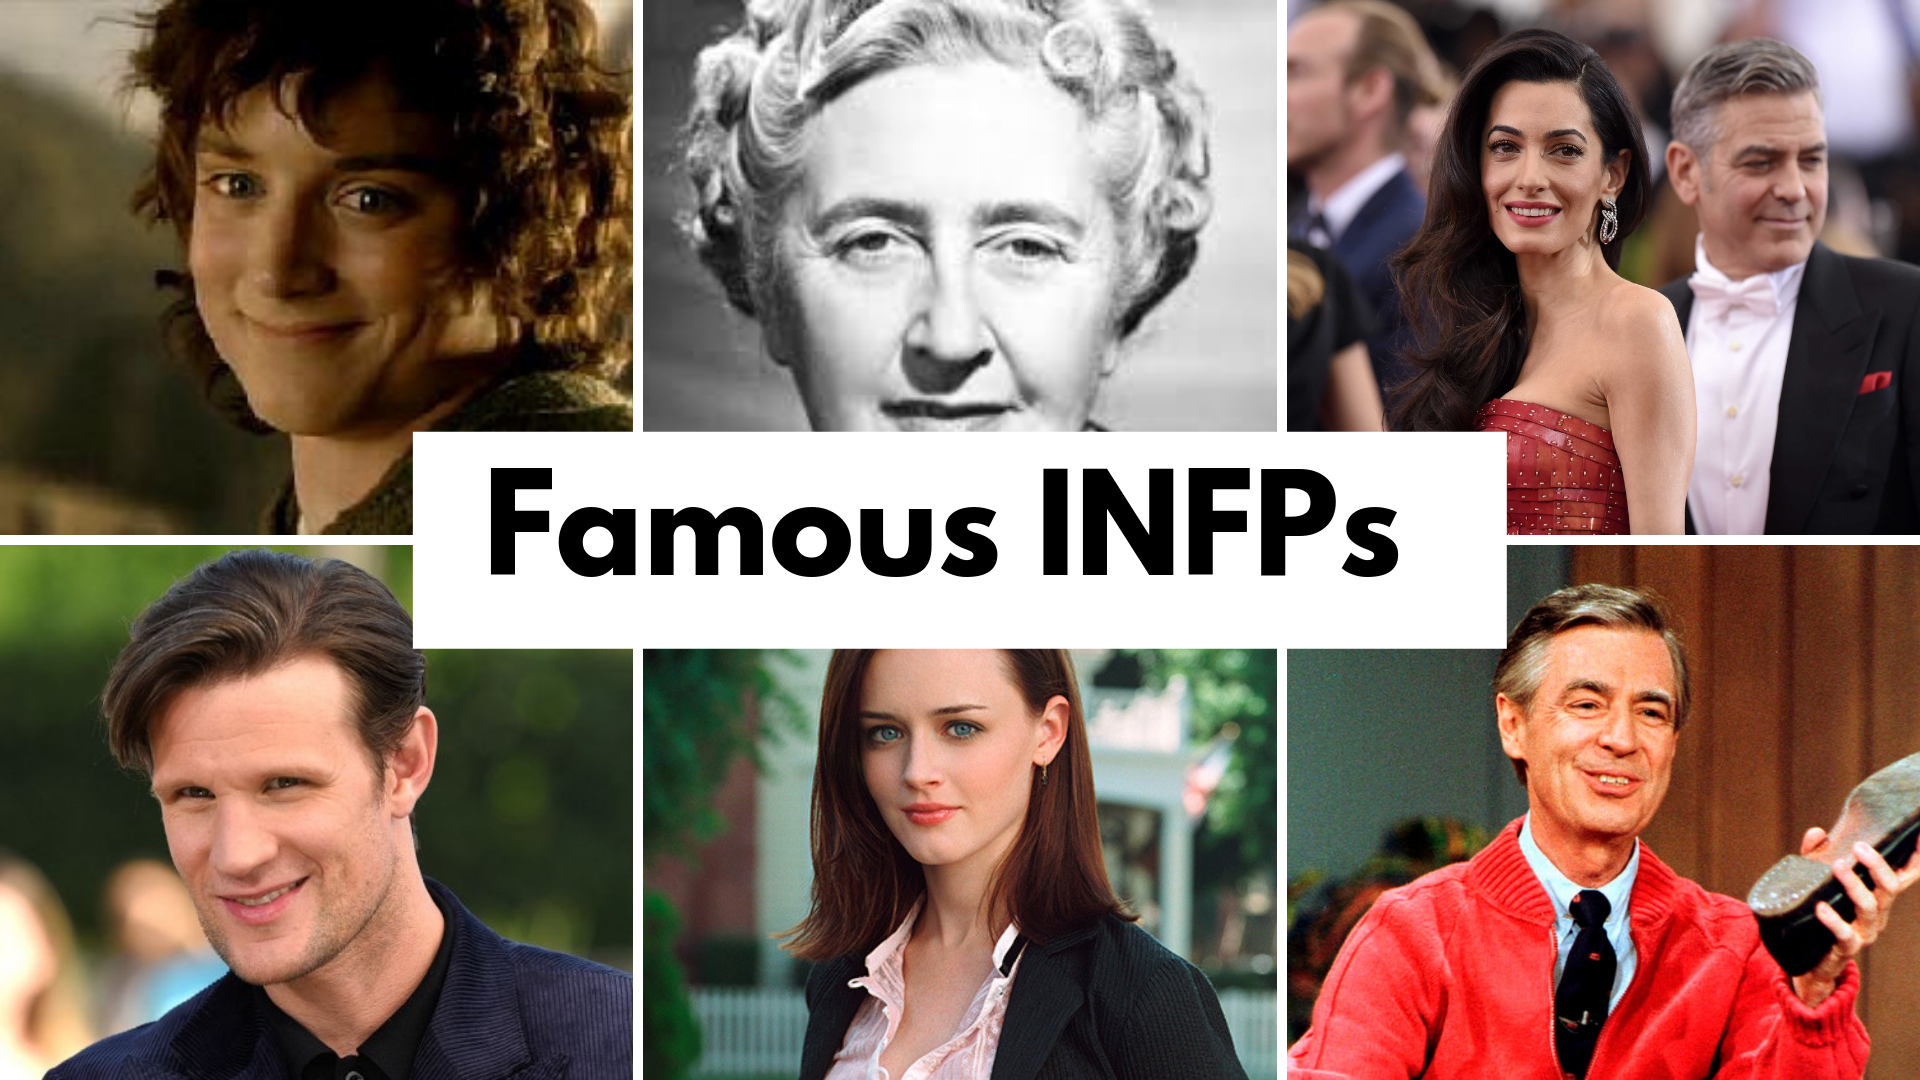 INFP Celebrities - Famous INFPs » Erik Thor